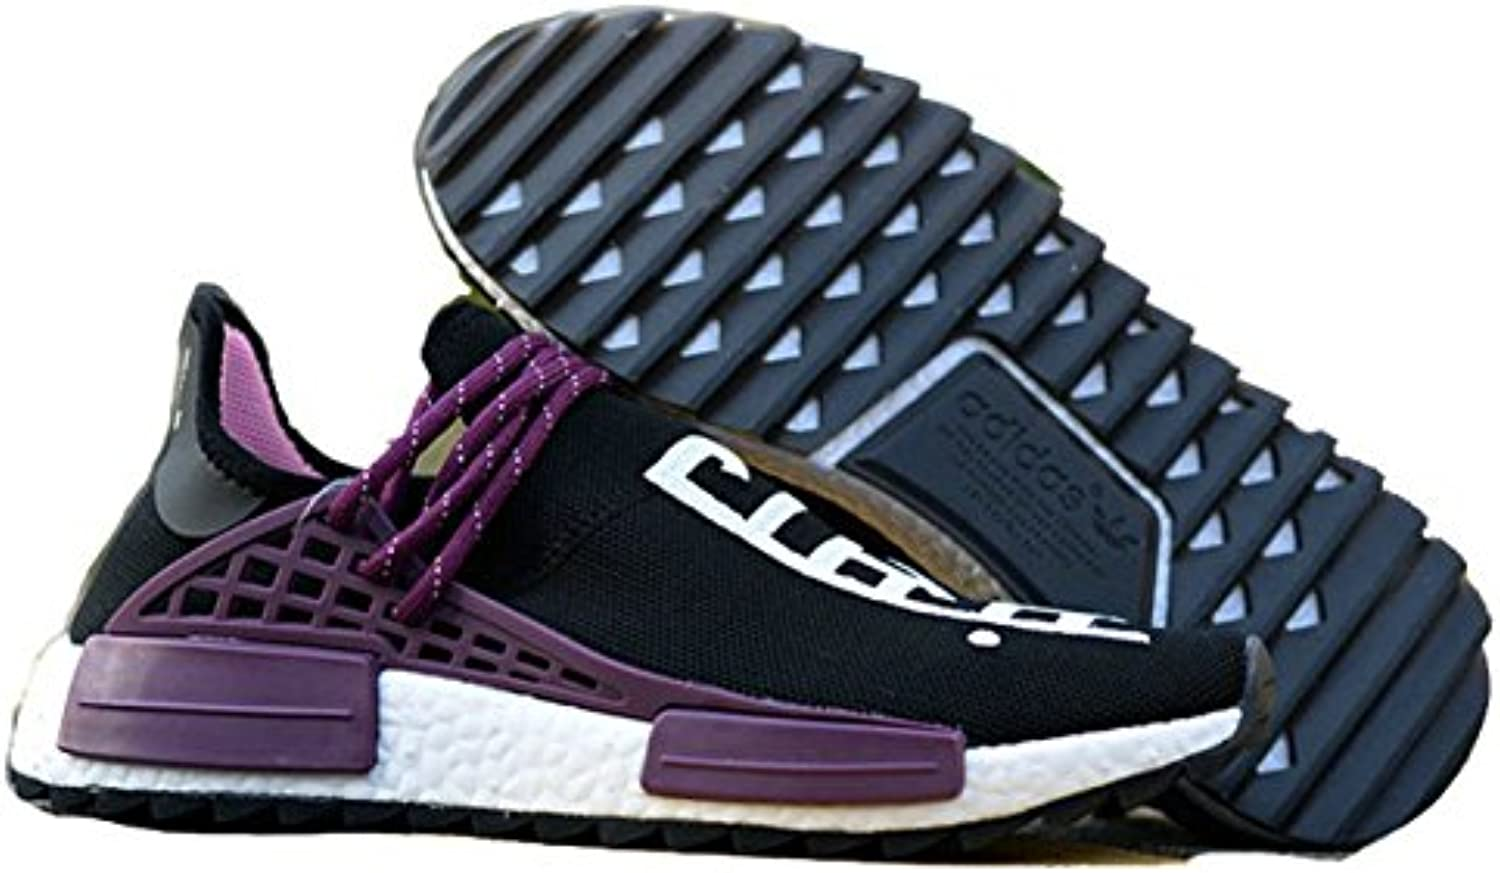 Fashion HM Sneaker Pharrell x NMD Hu Trail Equality Black Purple White Herren Damen Gymnastikschuhe